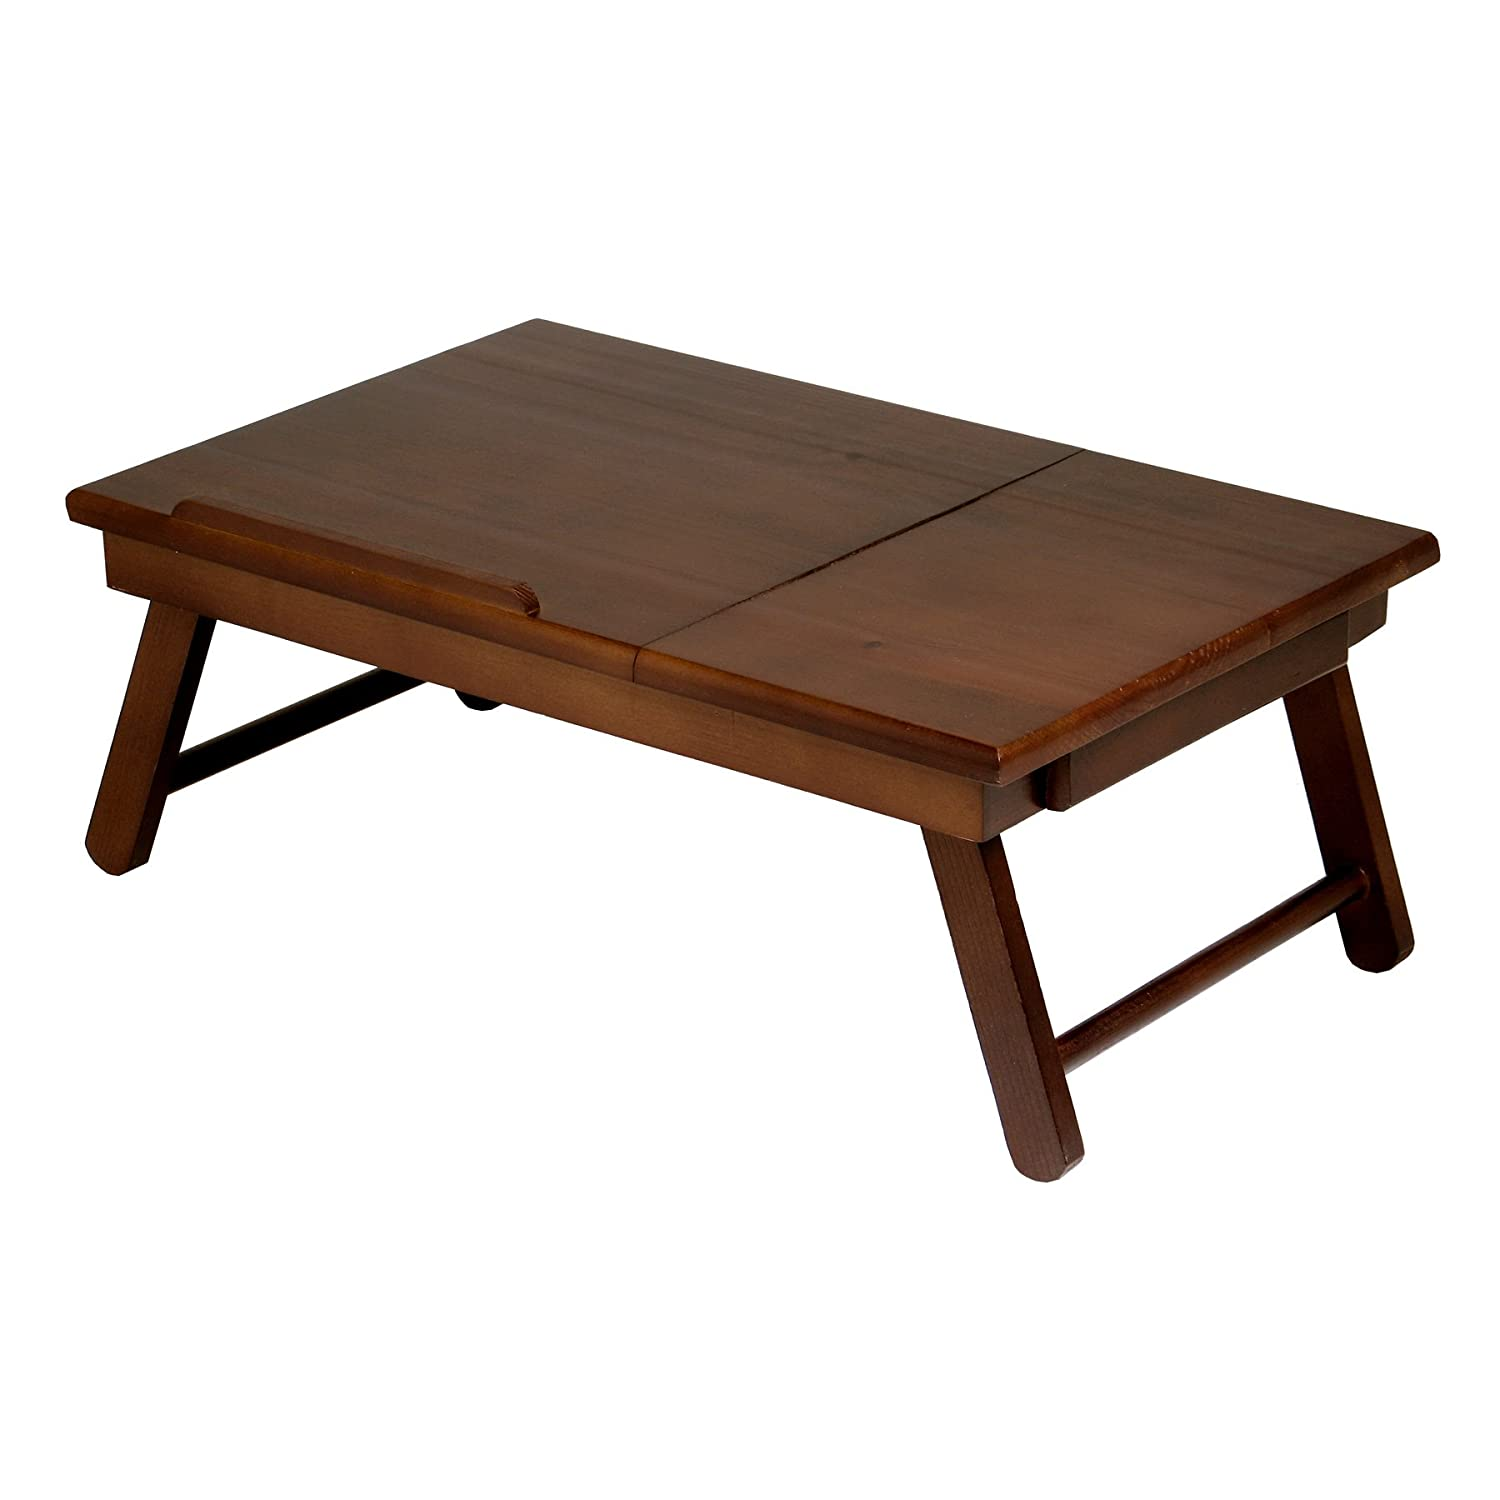 Wood Lap Desk Table Storage Drawer Foldable Legs Portable